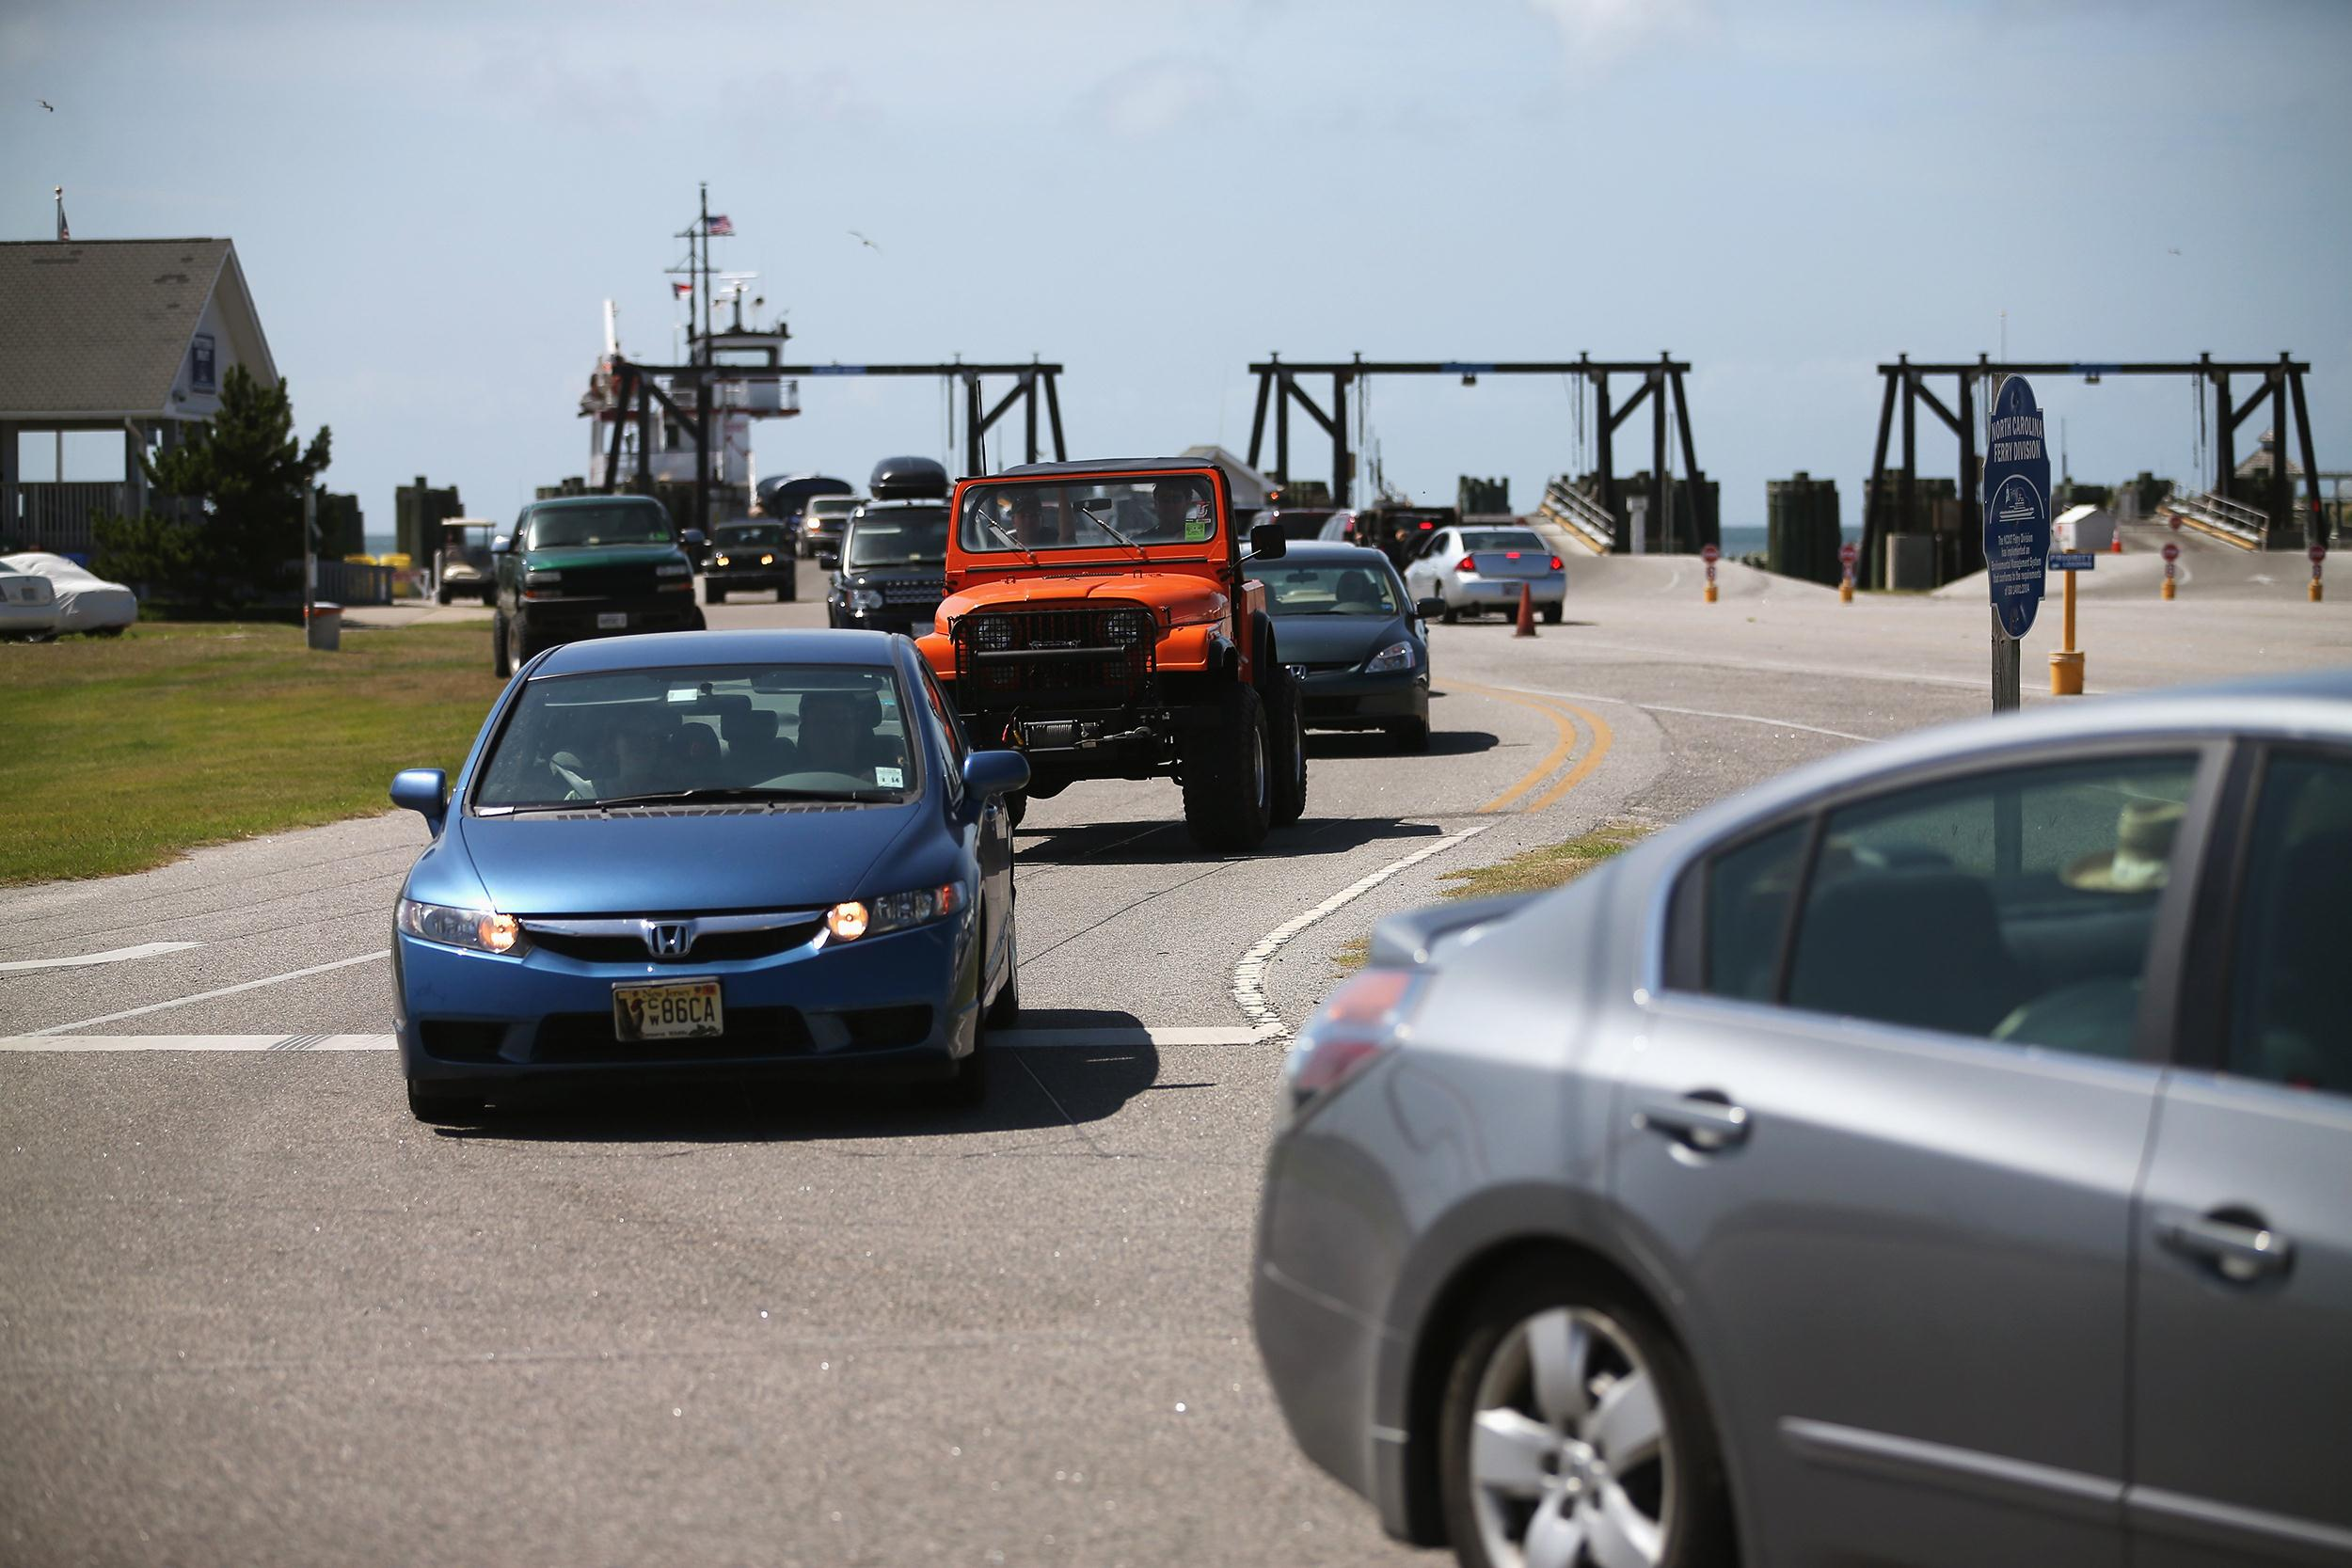 Image: Vehicles drive off the ferry from Ocracoke Island which officials have called for a voluntary evacuation